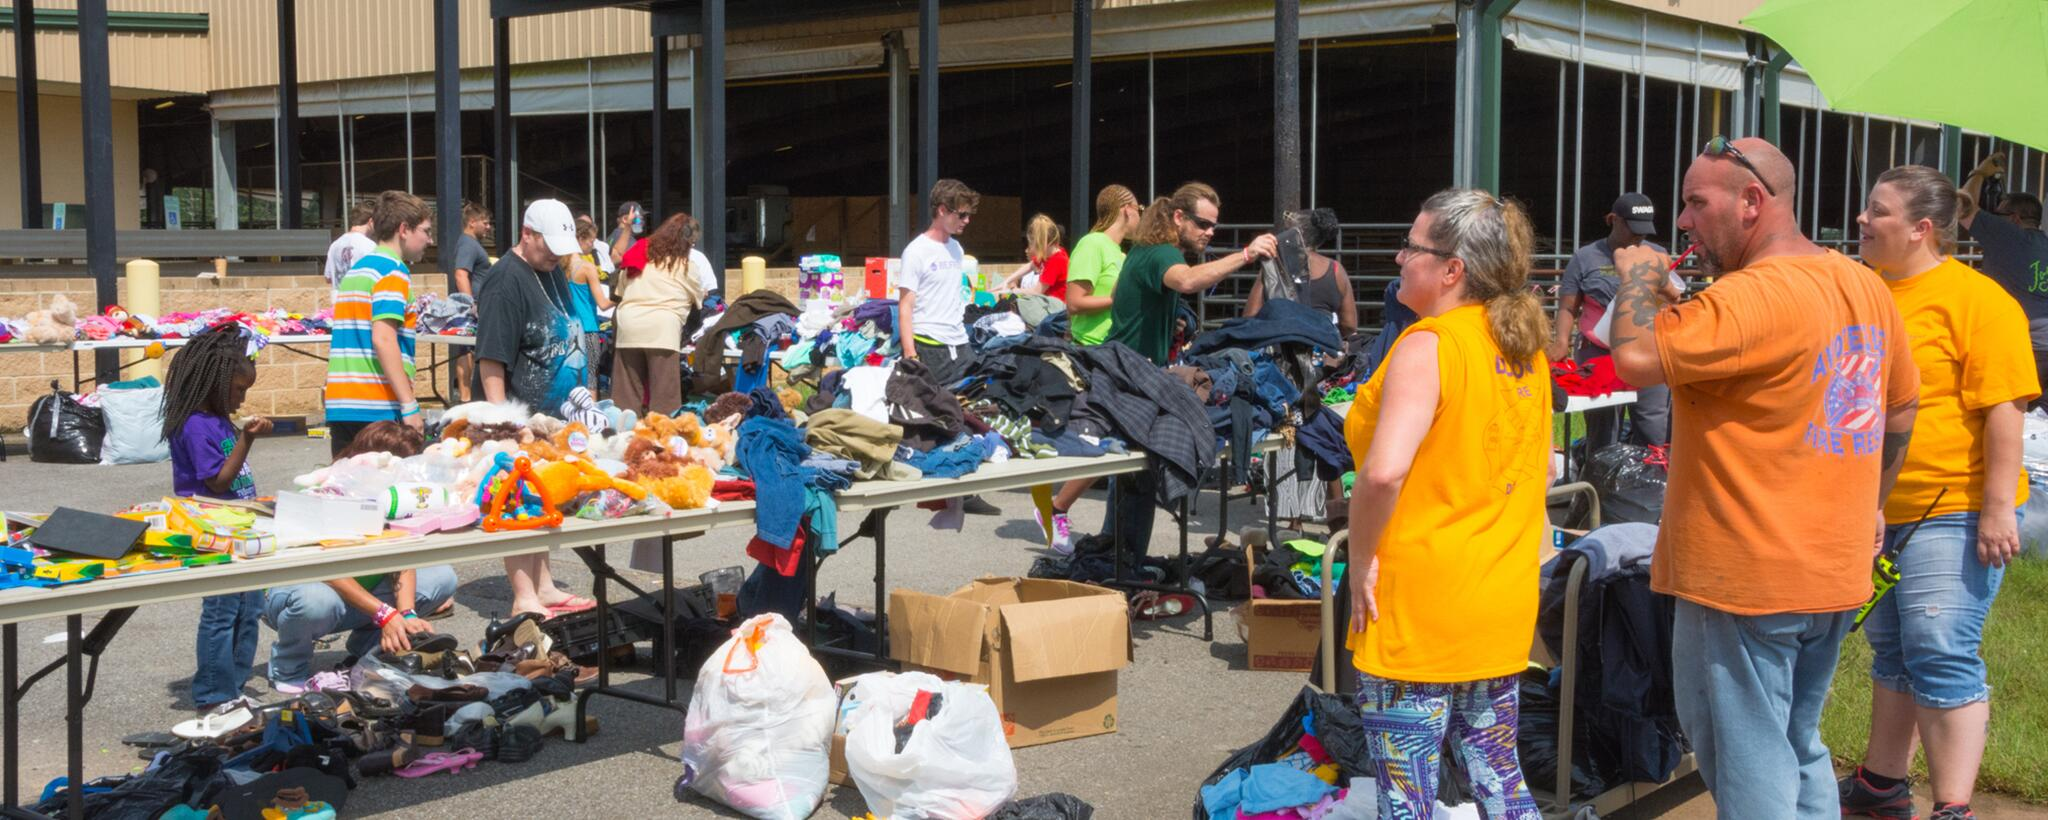 Volunteers and organizations brought clothing and other necessities for people to take as needed